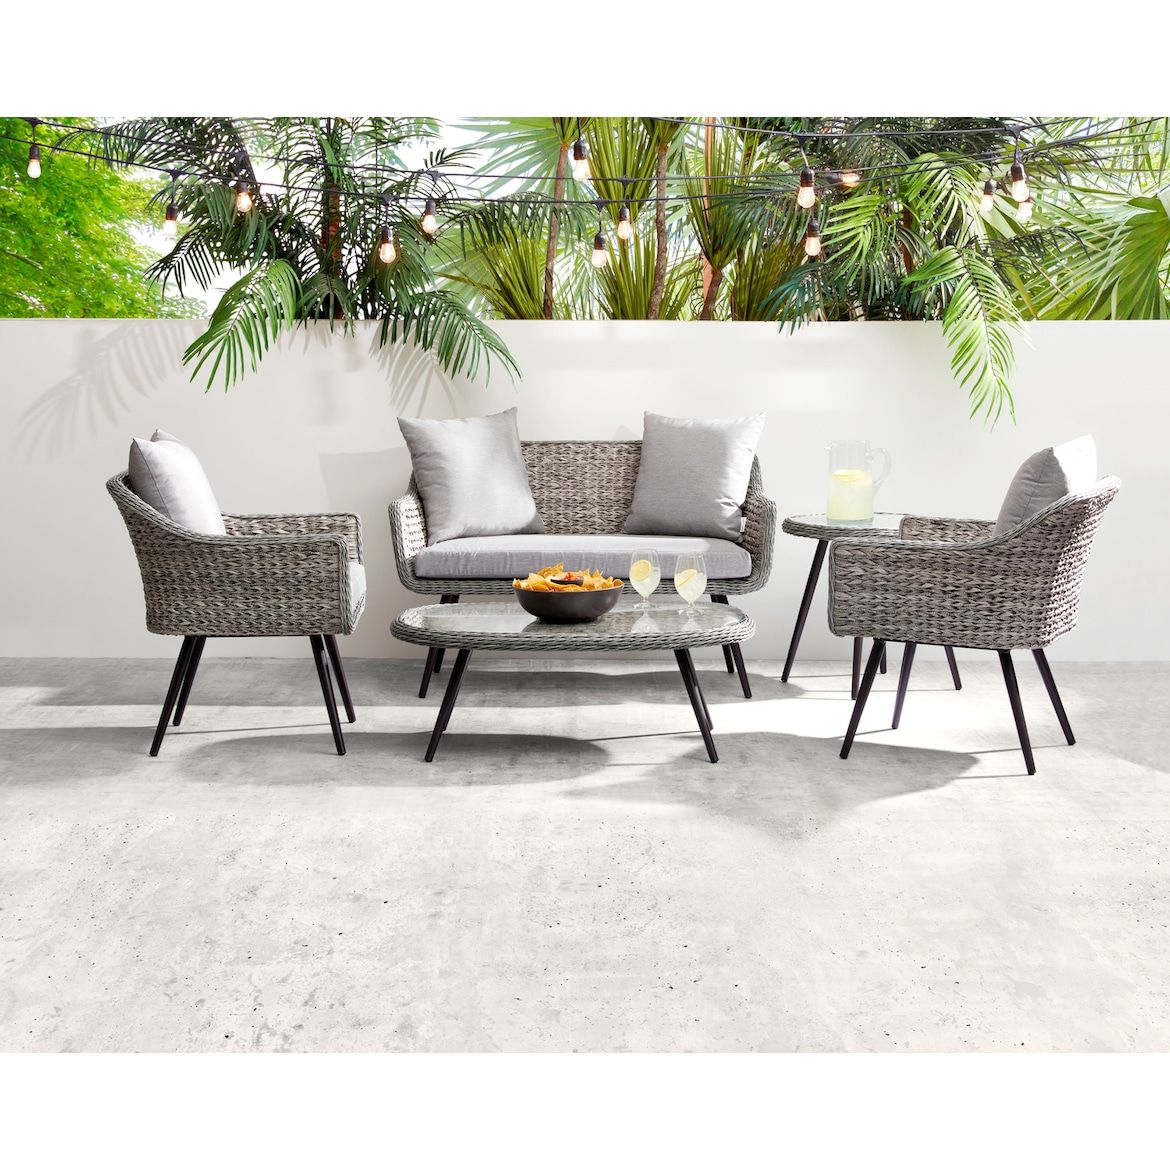 Palm Outdoor Loveseat Gray American Signature Furniture In 2020 Stylish Outdoor Furniture Furniture Outdoor Loveseat